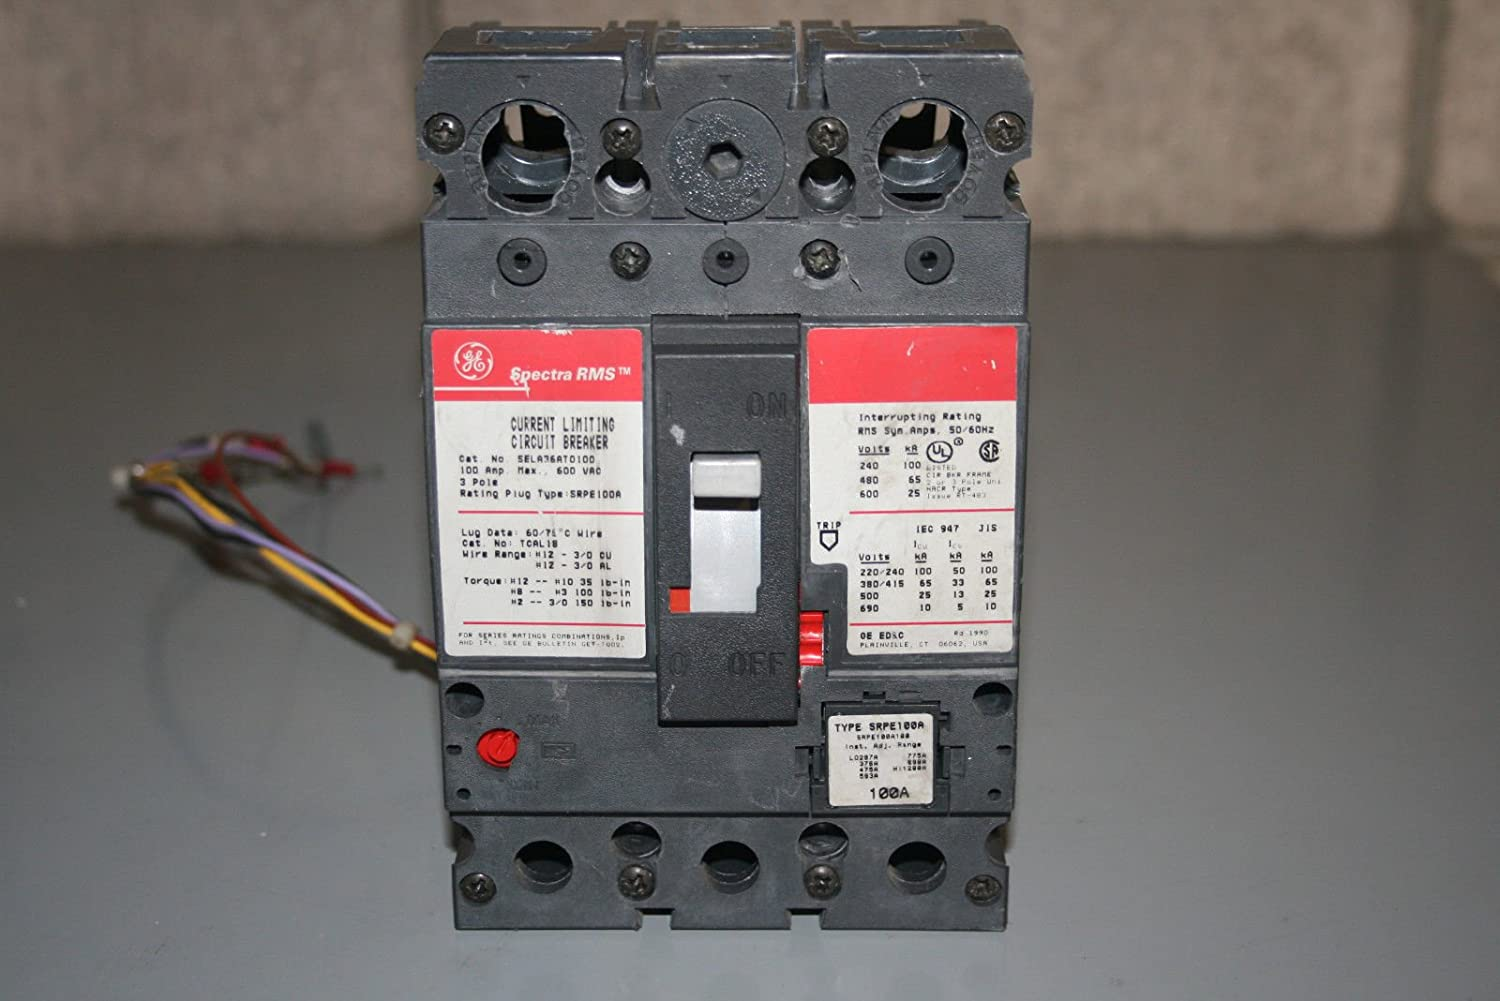 Ge Sel36at0100 Circuit Breaker With 120vshunt And Bell Alarm Arc Fault Interrupter Afci Industrial Solutions Scientific